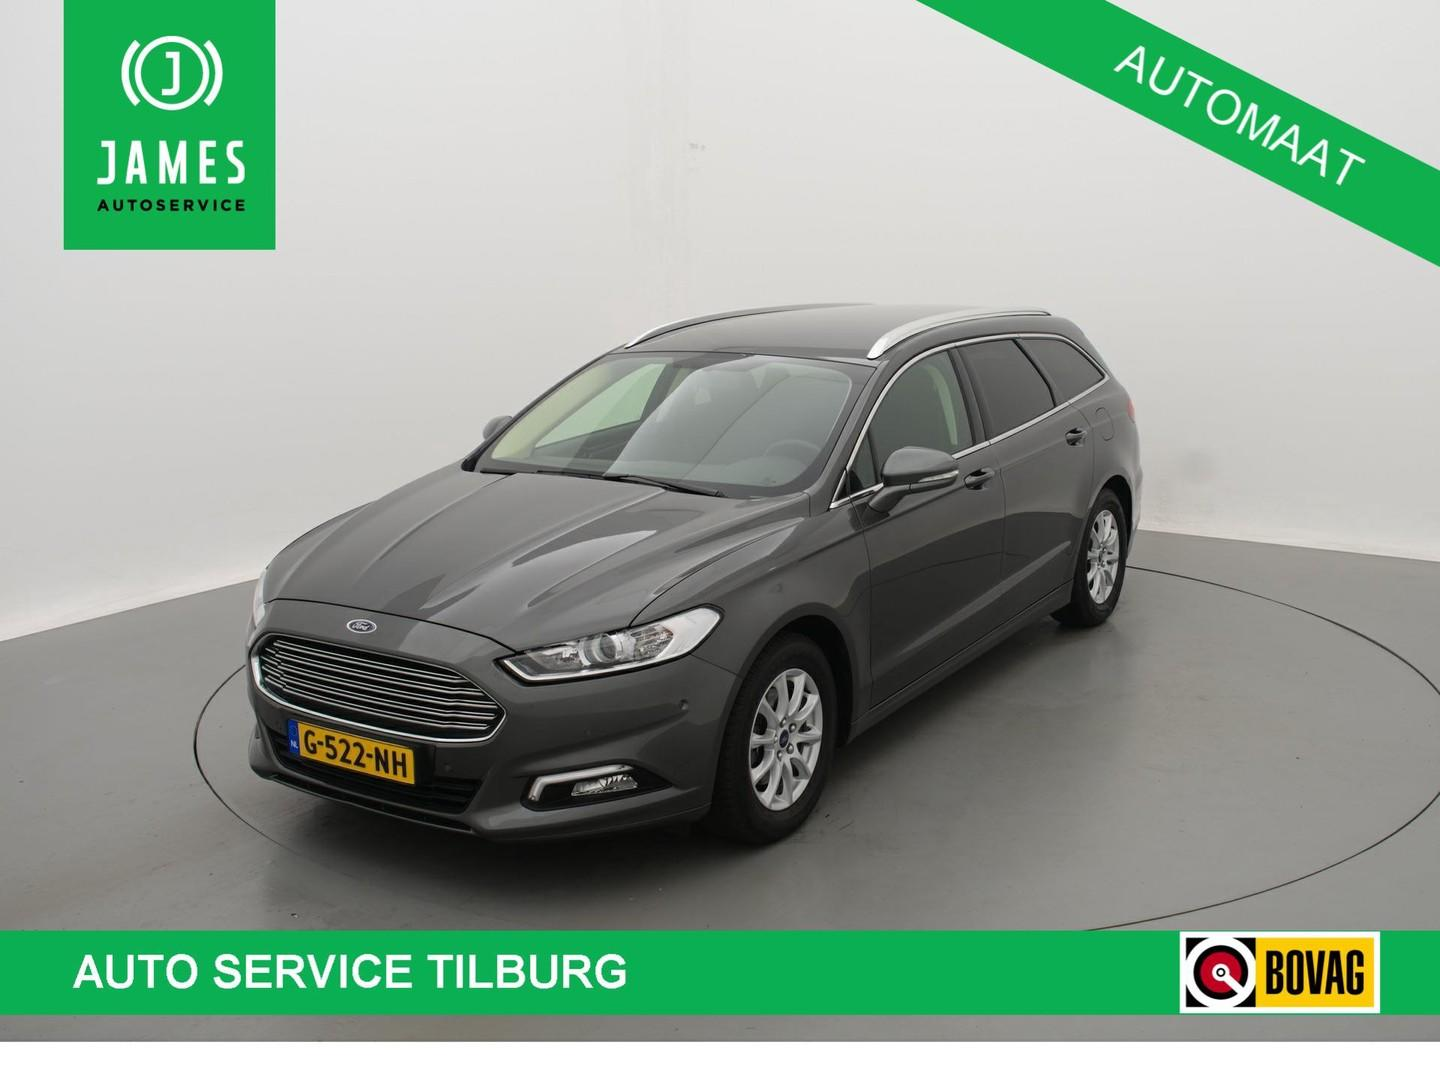 "Ford Mondeo Wagon 1.5 *160 pk* titanium autom. navi clima cruise privacy-glass 16""lmv"